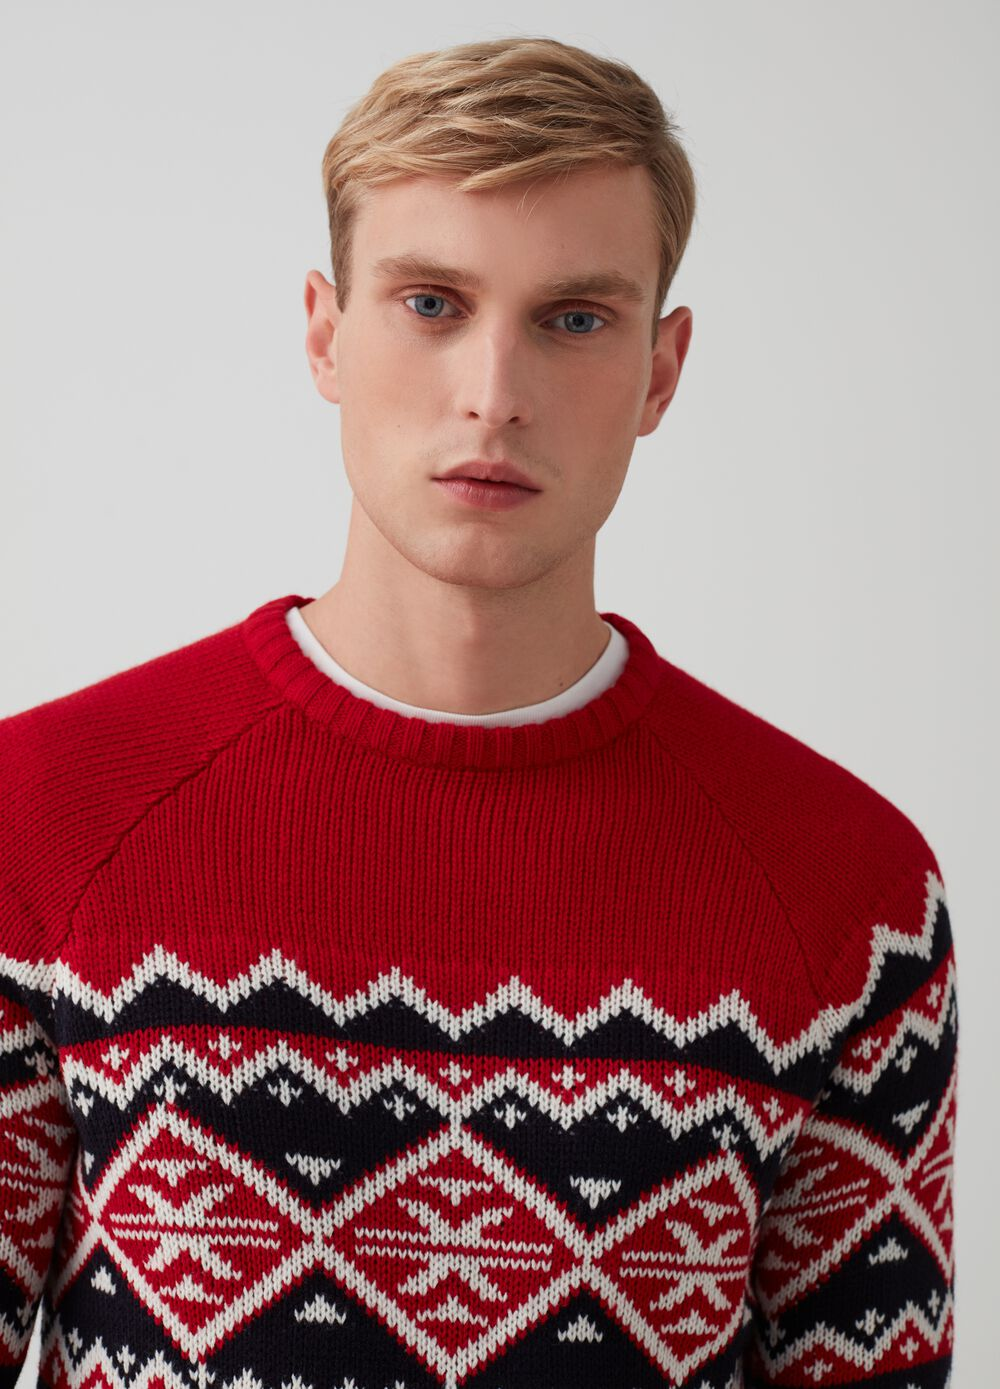 Knitted Christmas jumper with embroidery